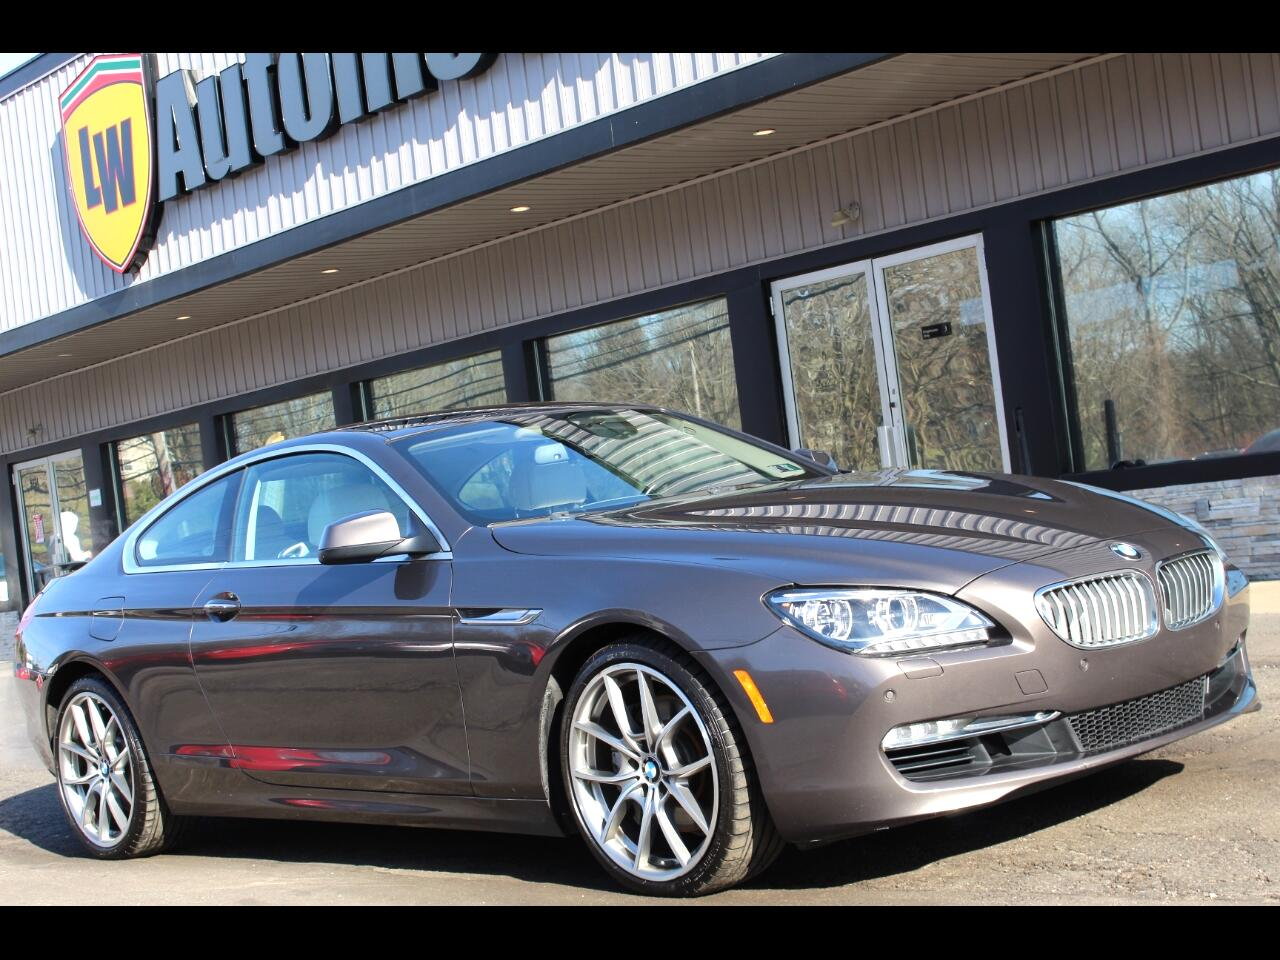 BMW 6 Series 2dr Cpe 650i xDrive 2013